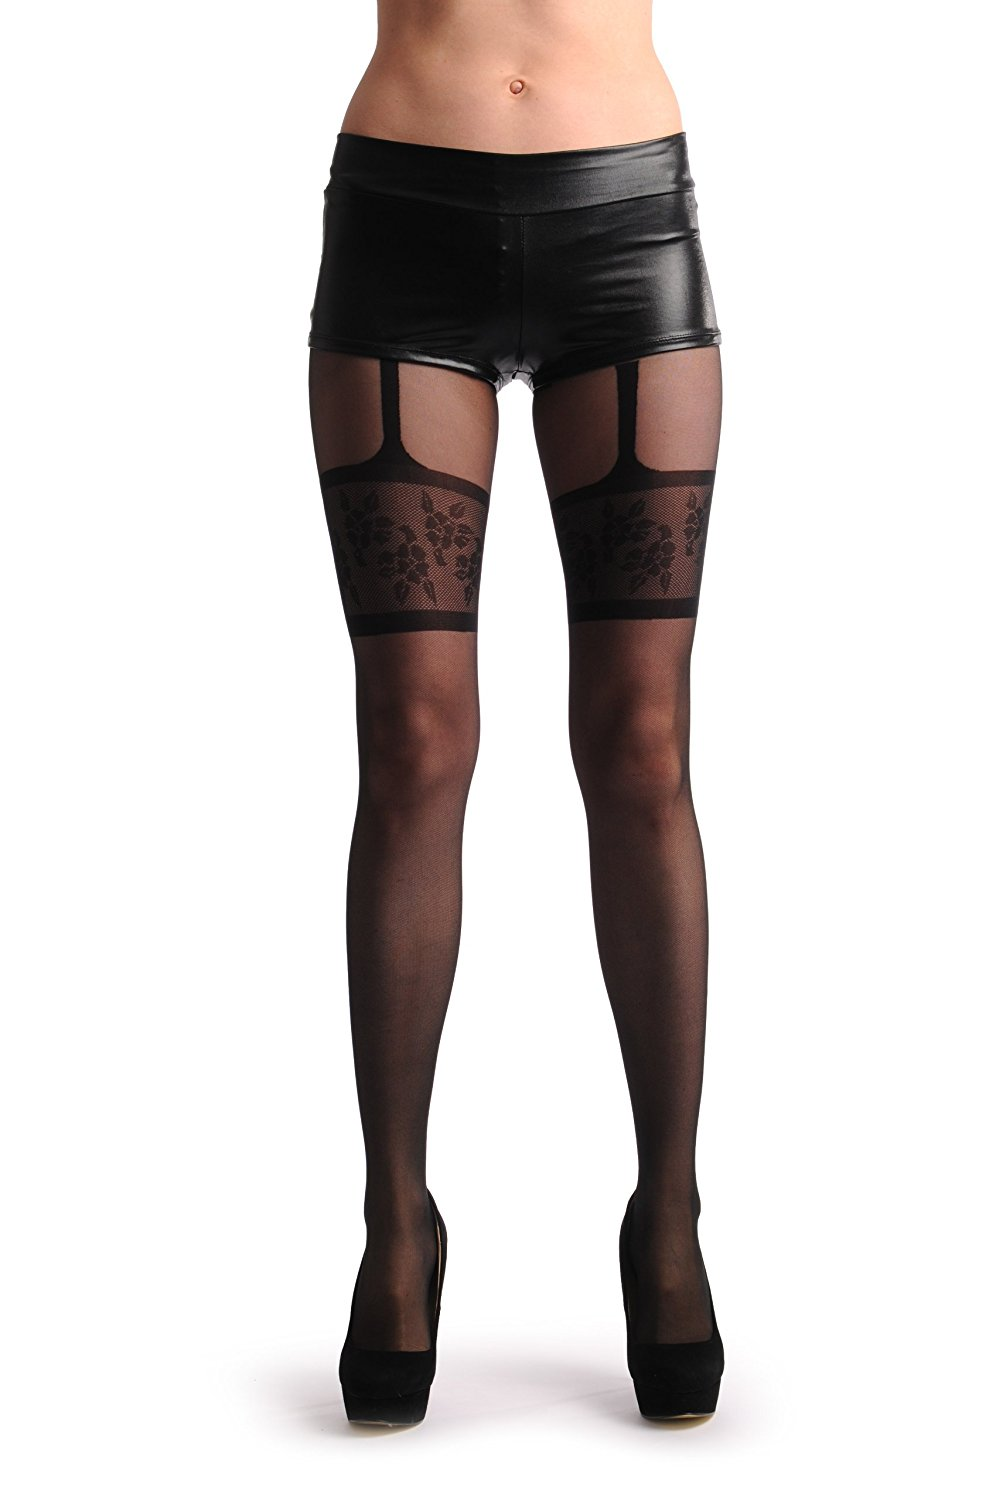 e8abd30452a Get Quotations · Black Faux Suspender With Floral Garter - Black Suspender  Floral Pantyhose (Tights)